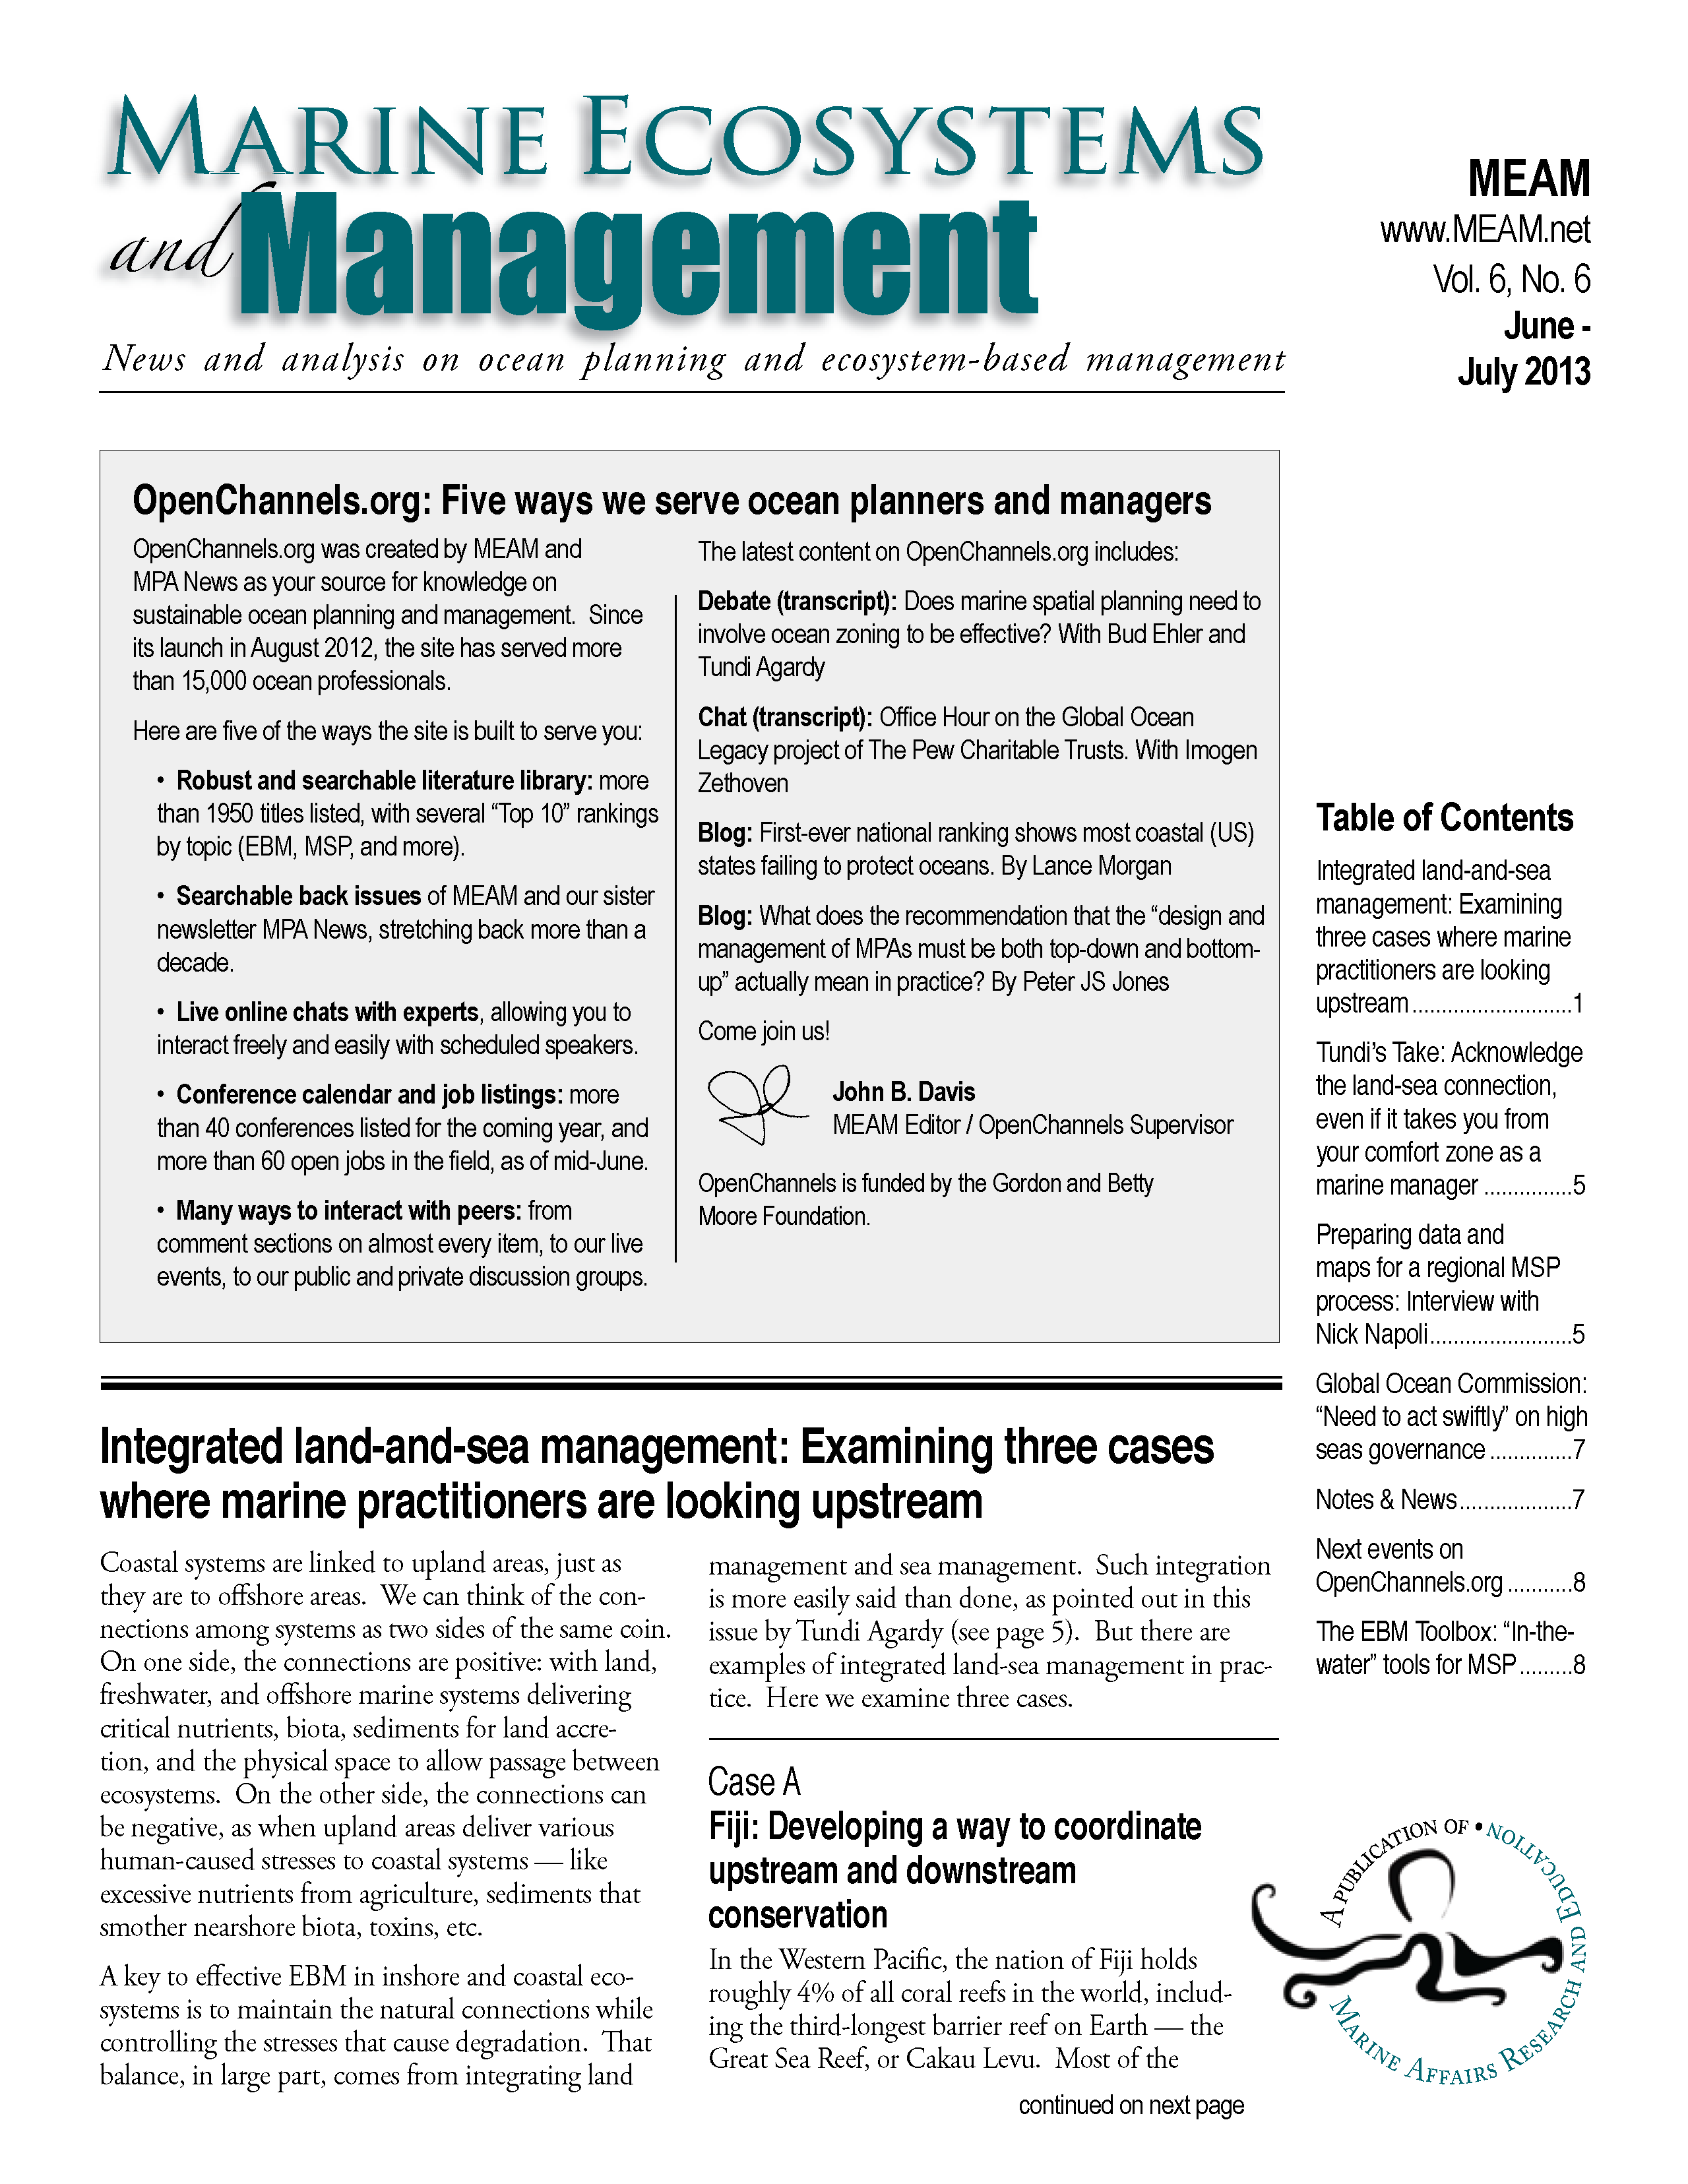 Capa da Marine Ecosystems and Management - Vol. 6, No. 6 - June - July 2013 Integrated land-and-sea management: Examining three cases where marine practitioners are looking upstream